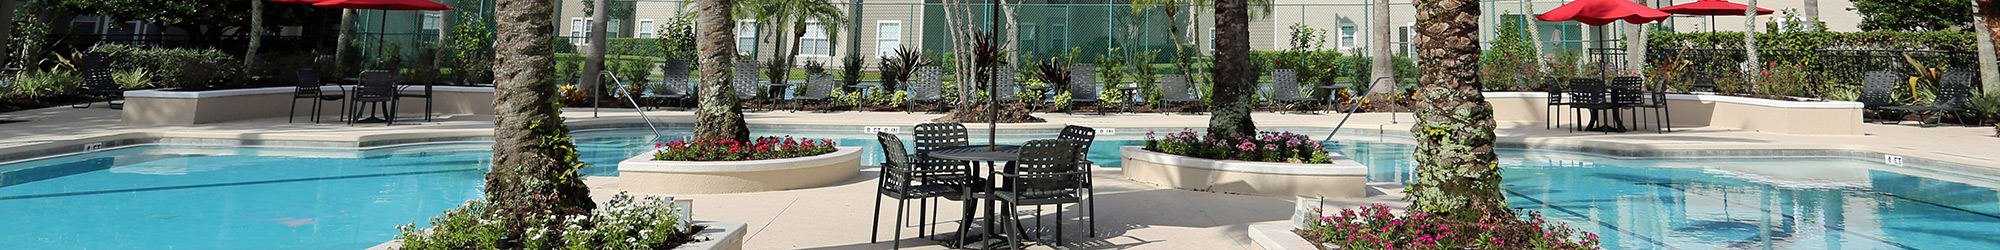 Pet friendly apartments in Orlando